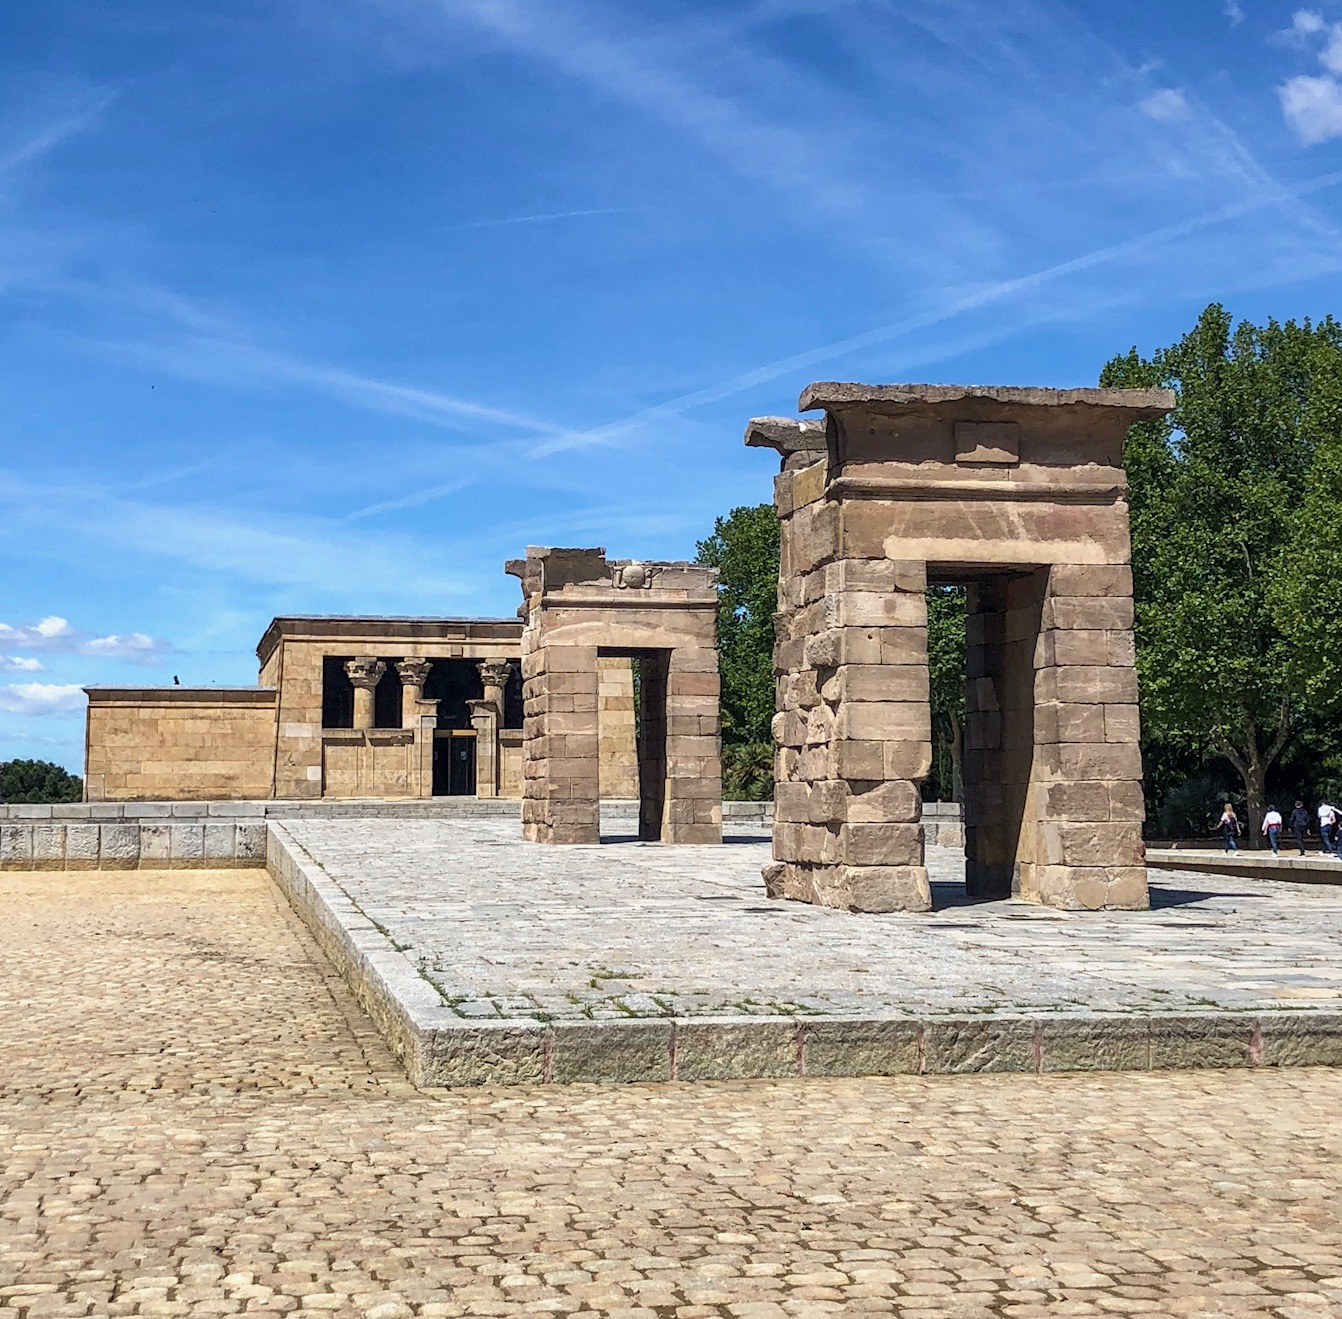 Templo de Debod - Madrid Spain - Ancient Egyptian Temple